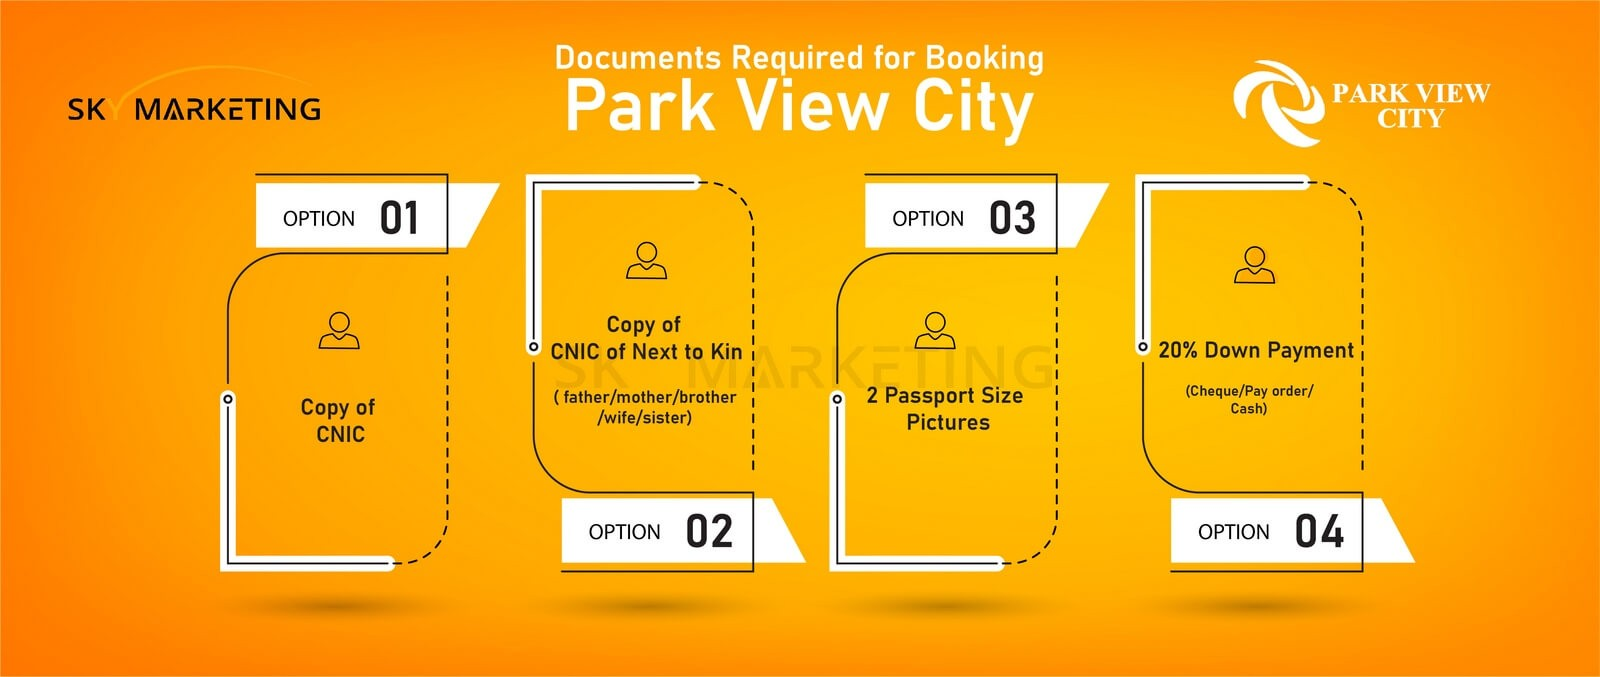 Park View City Booking Procedure